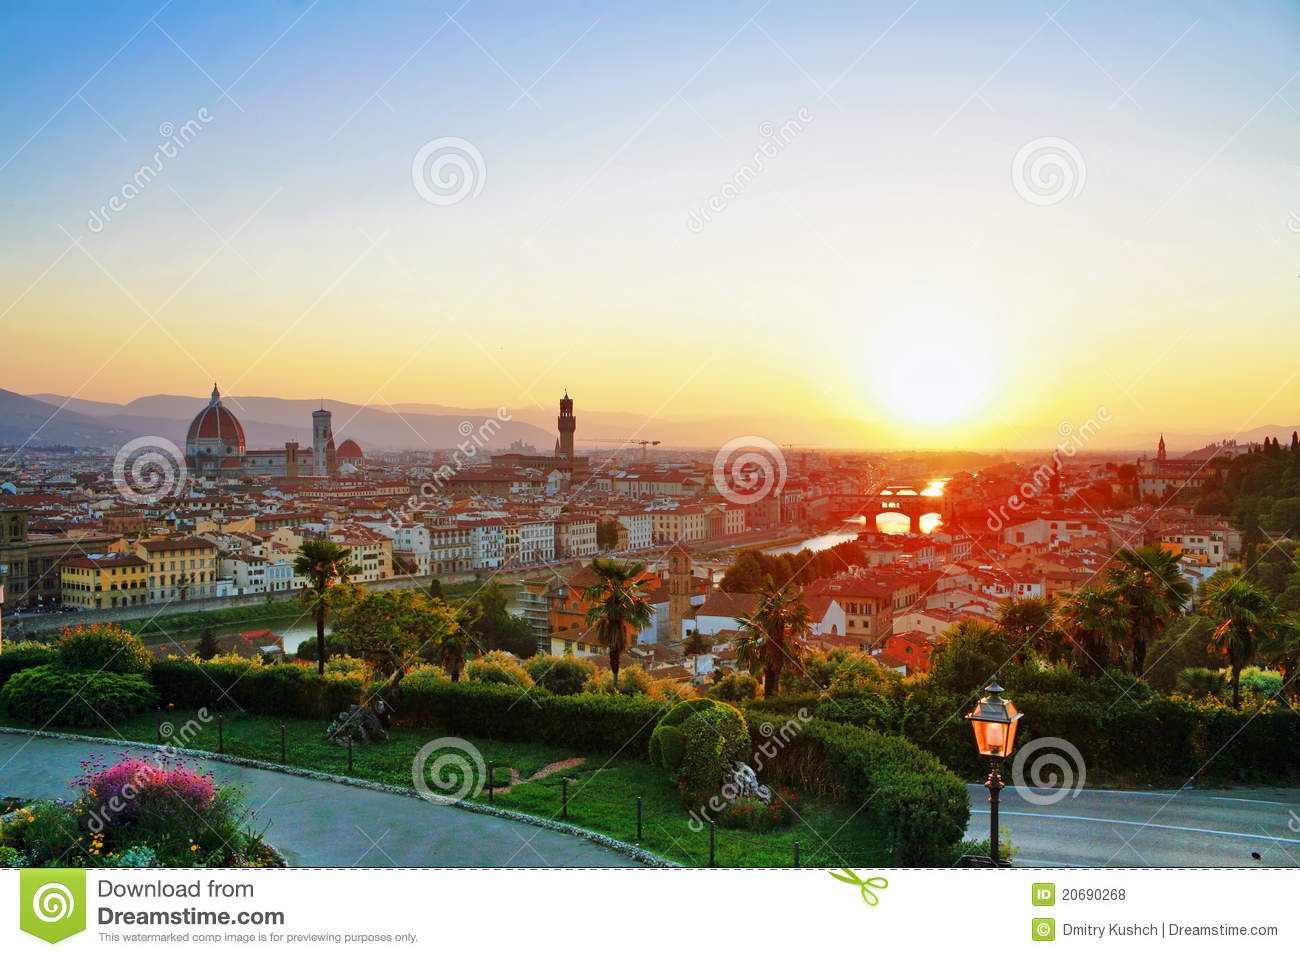 City Of Florence: Sunset With View Of Florence Royalty Free Stock Photos